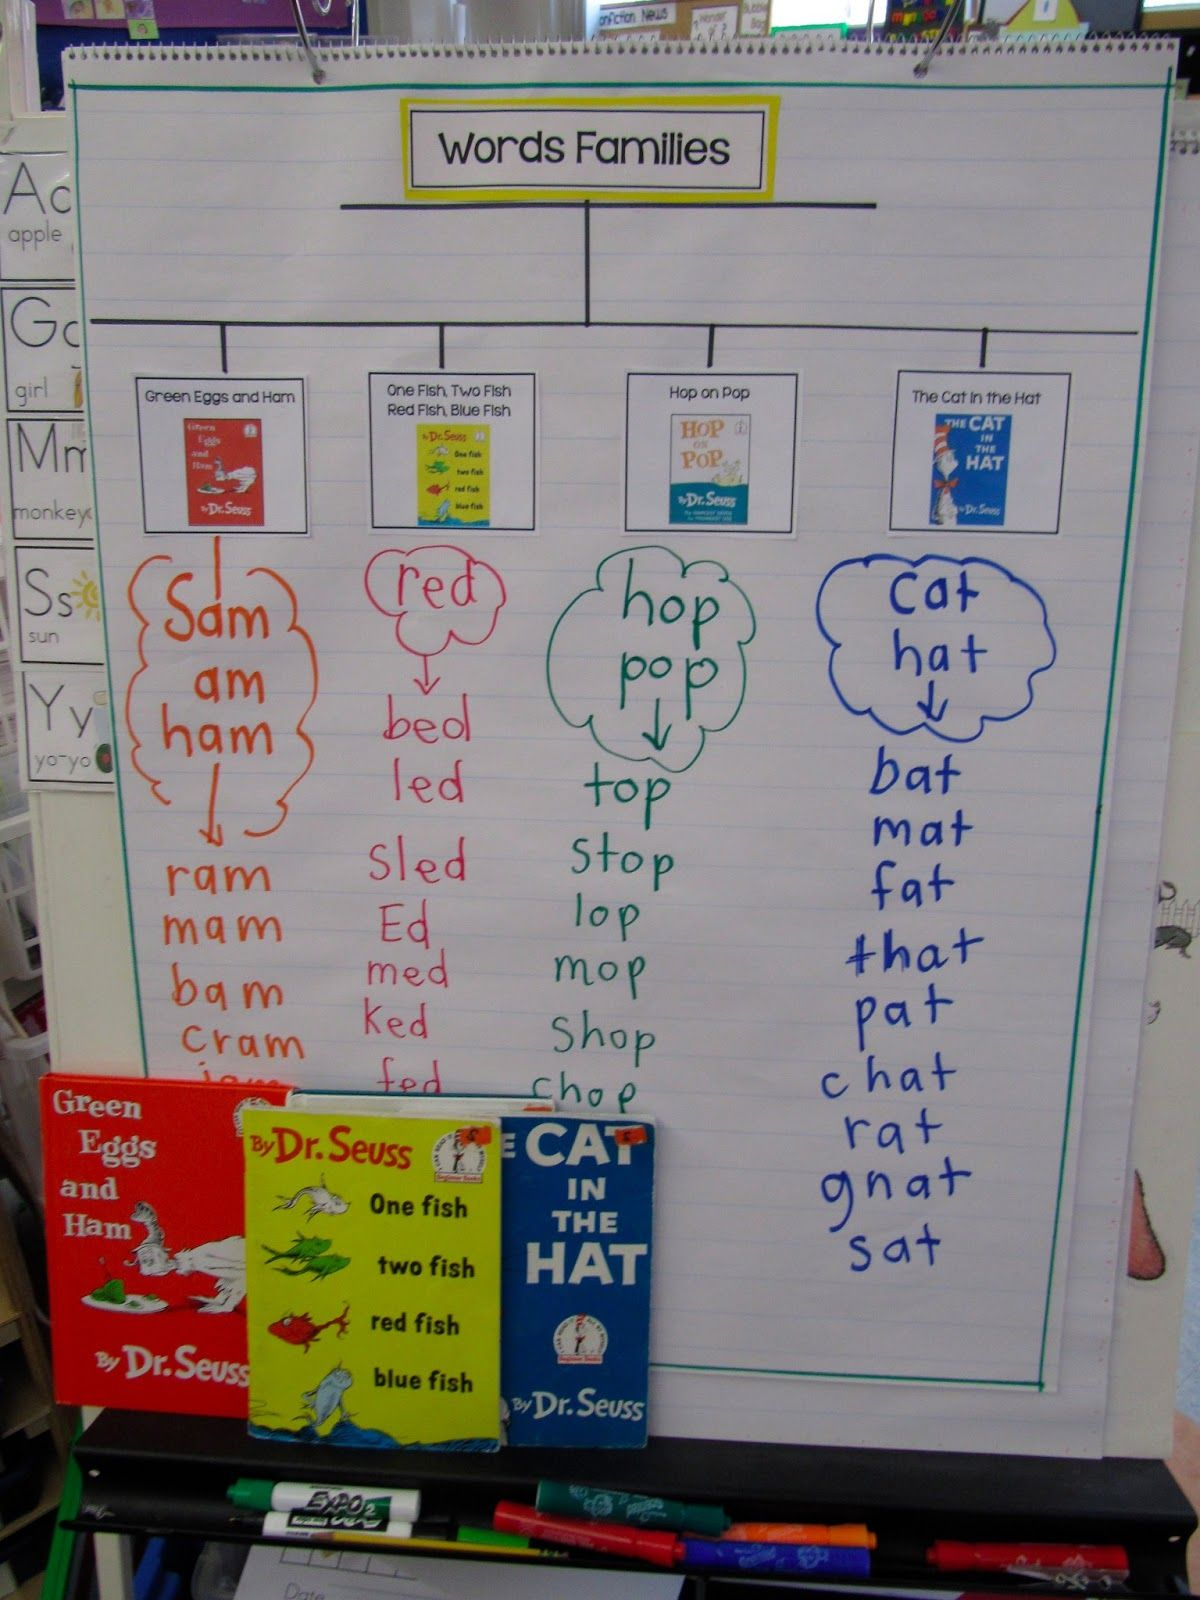 Dr Seuss Activities Rhyming Words Out Of Popular Seuss Books Cute Love The Color Coding